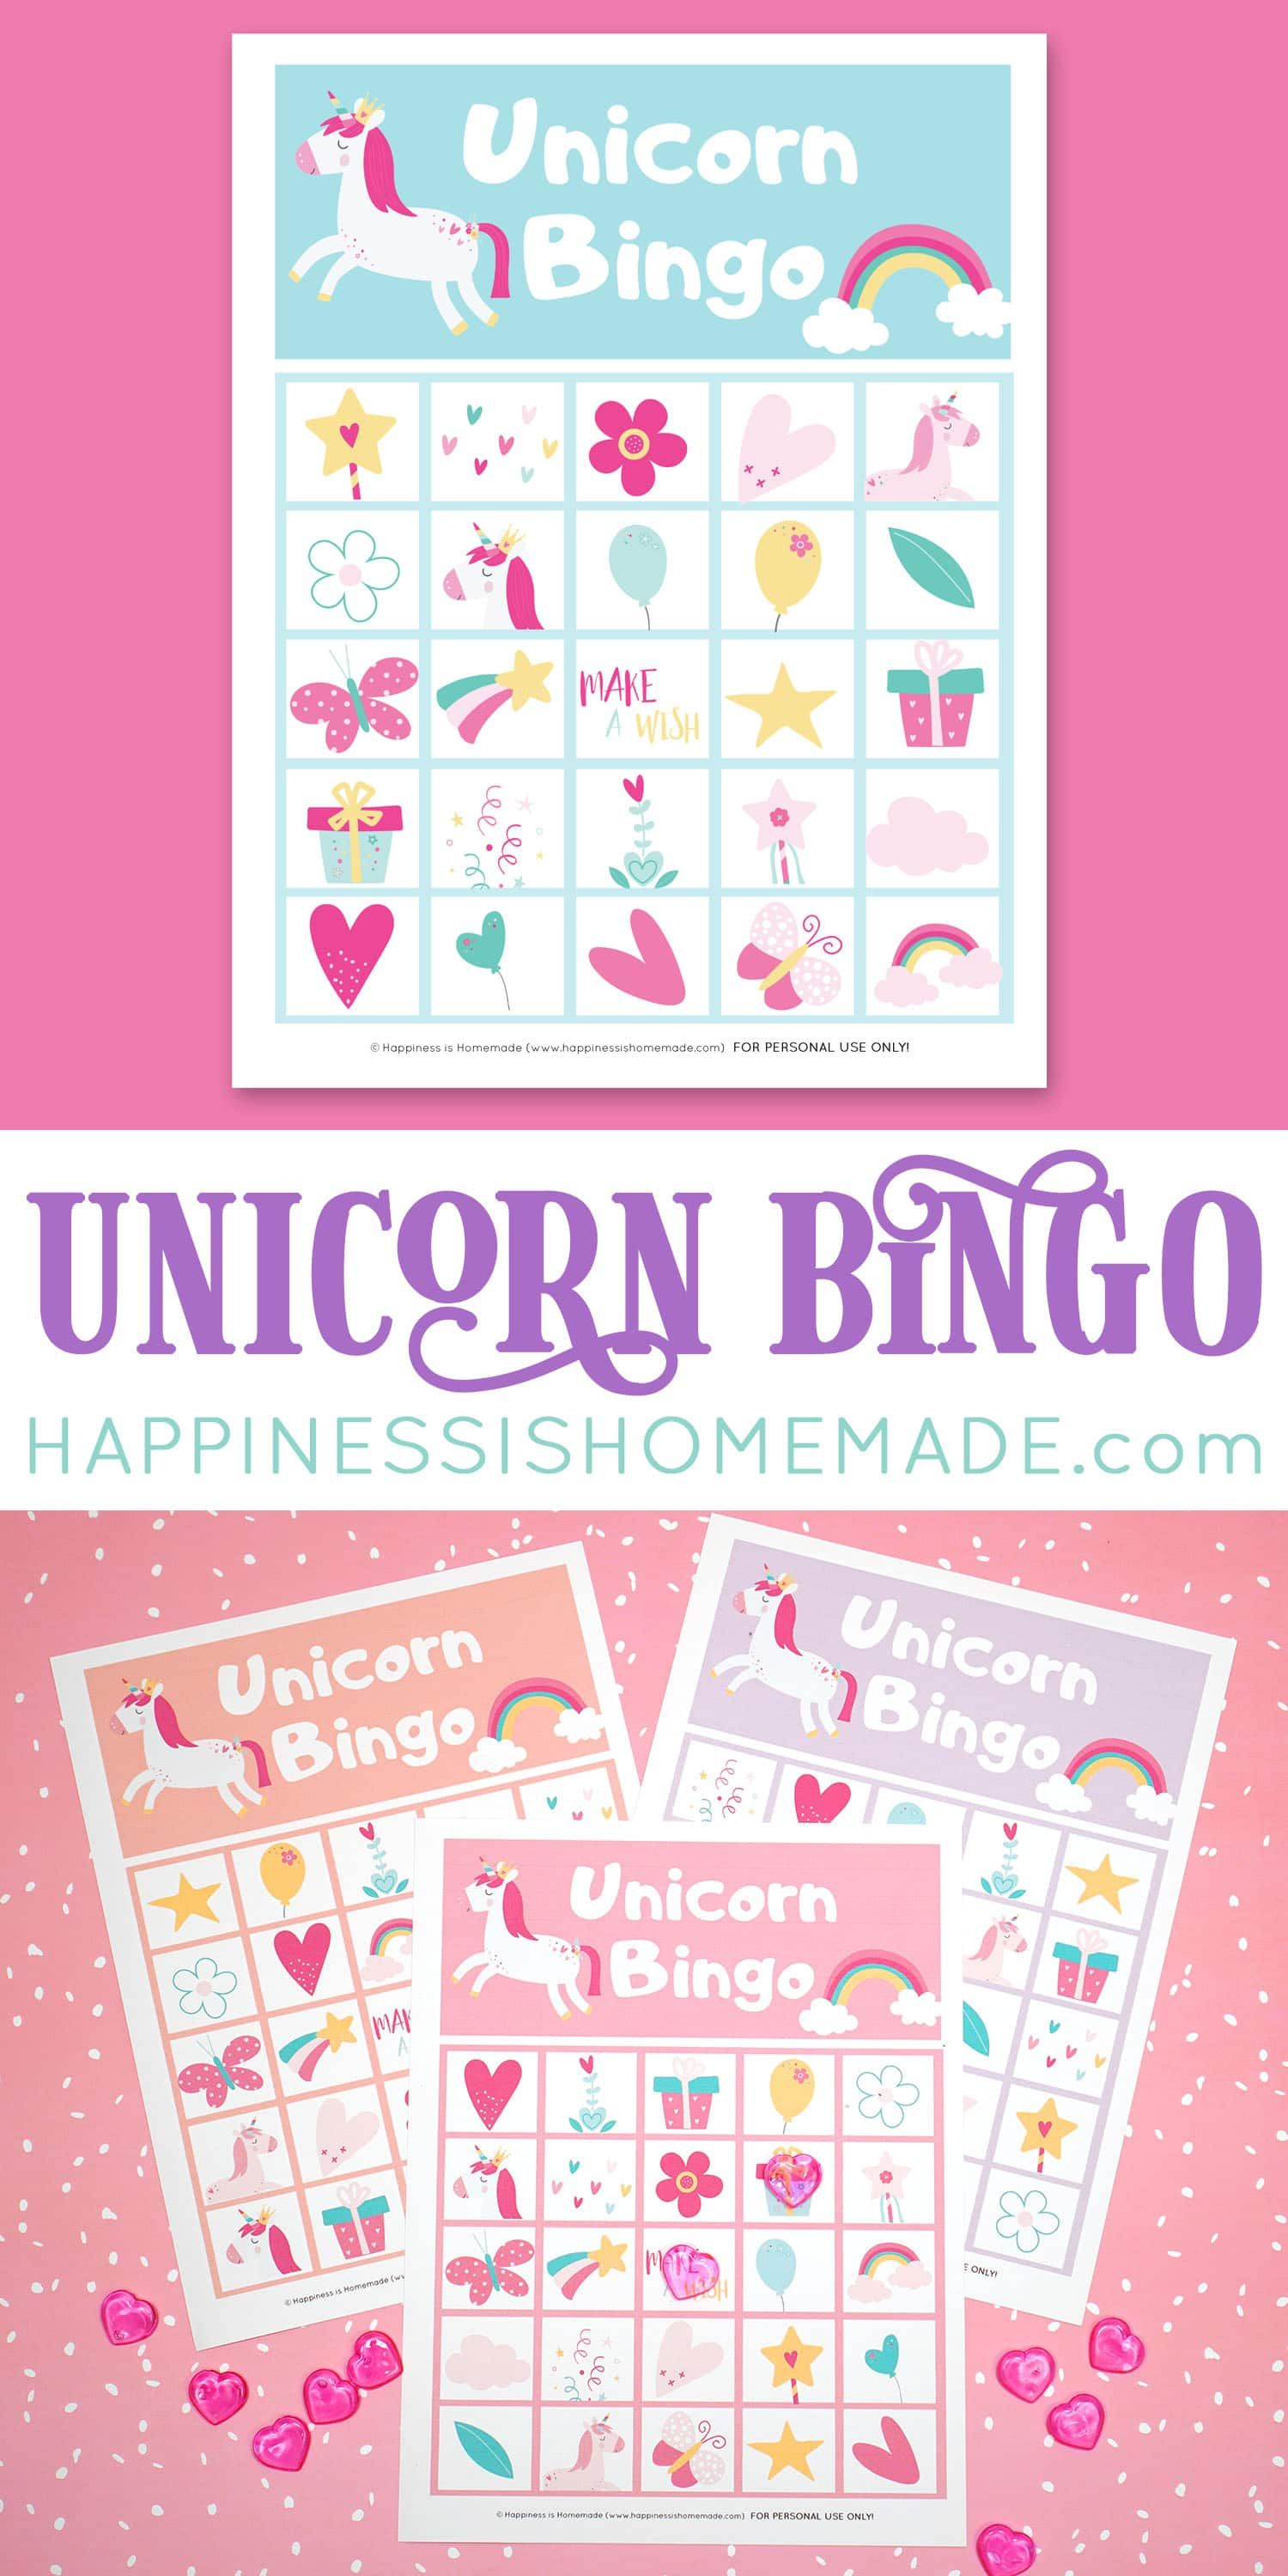 Download Our Free Printable Unicorn Bingo Game Cards To Play This Fun And Colorful Unic Bingo Printable Kids Bingo Printable Free Birthday Party Games For Kids